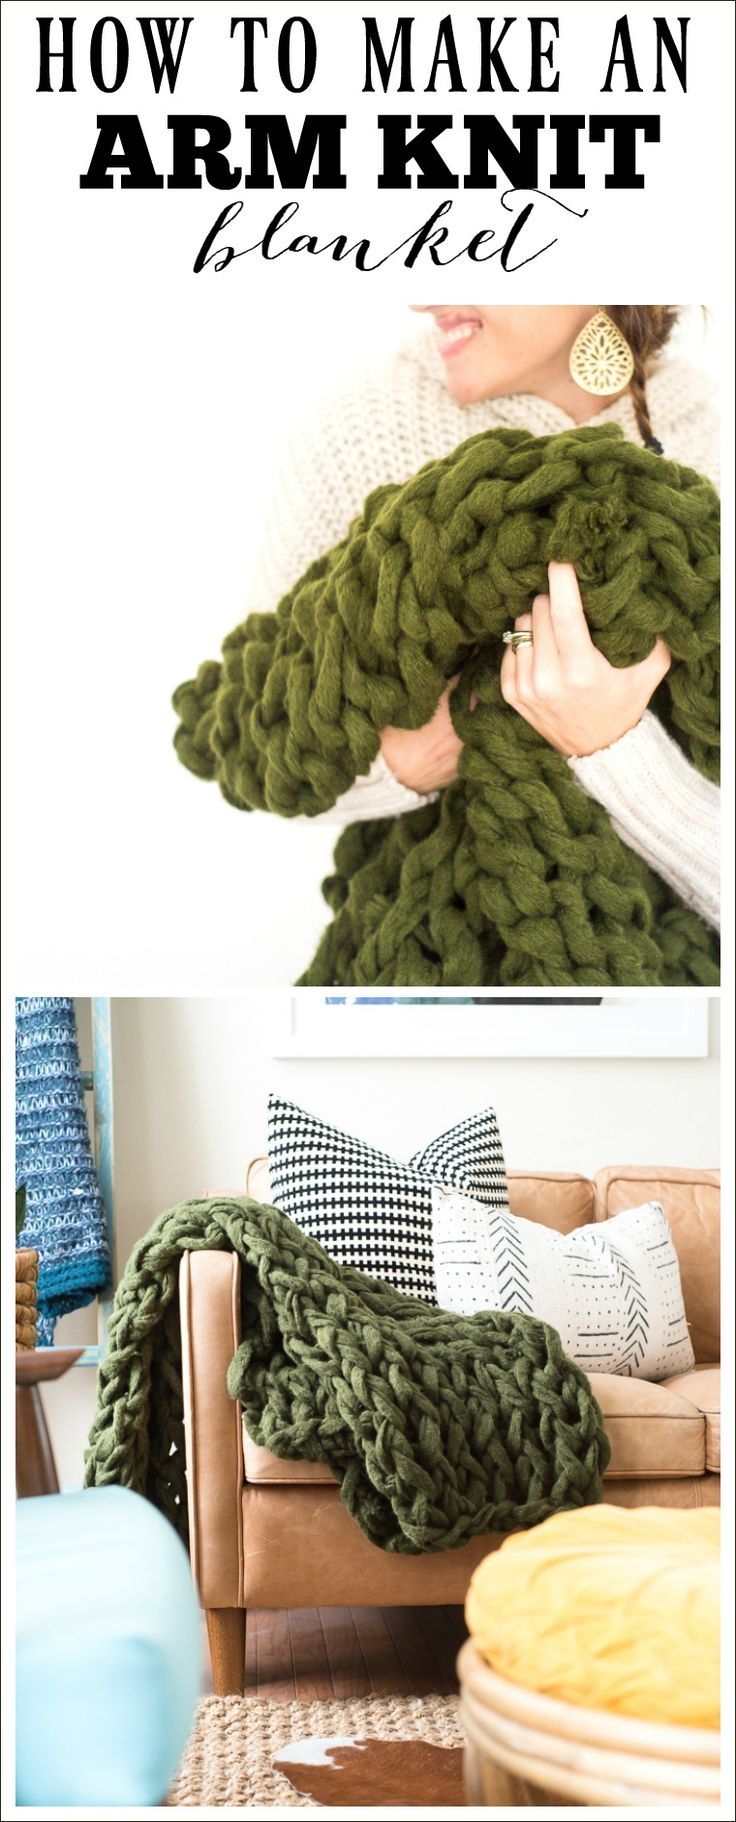 Learn how to make an arm knit blanket! Easy tutorial of a basic arm knit blanket. This cozy arm knit blanket will be a great addition to any home!